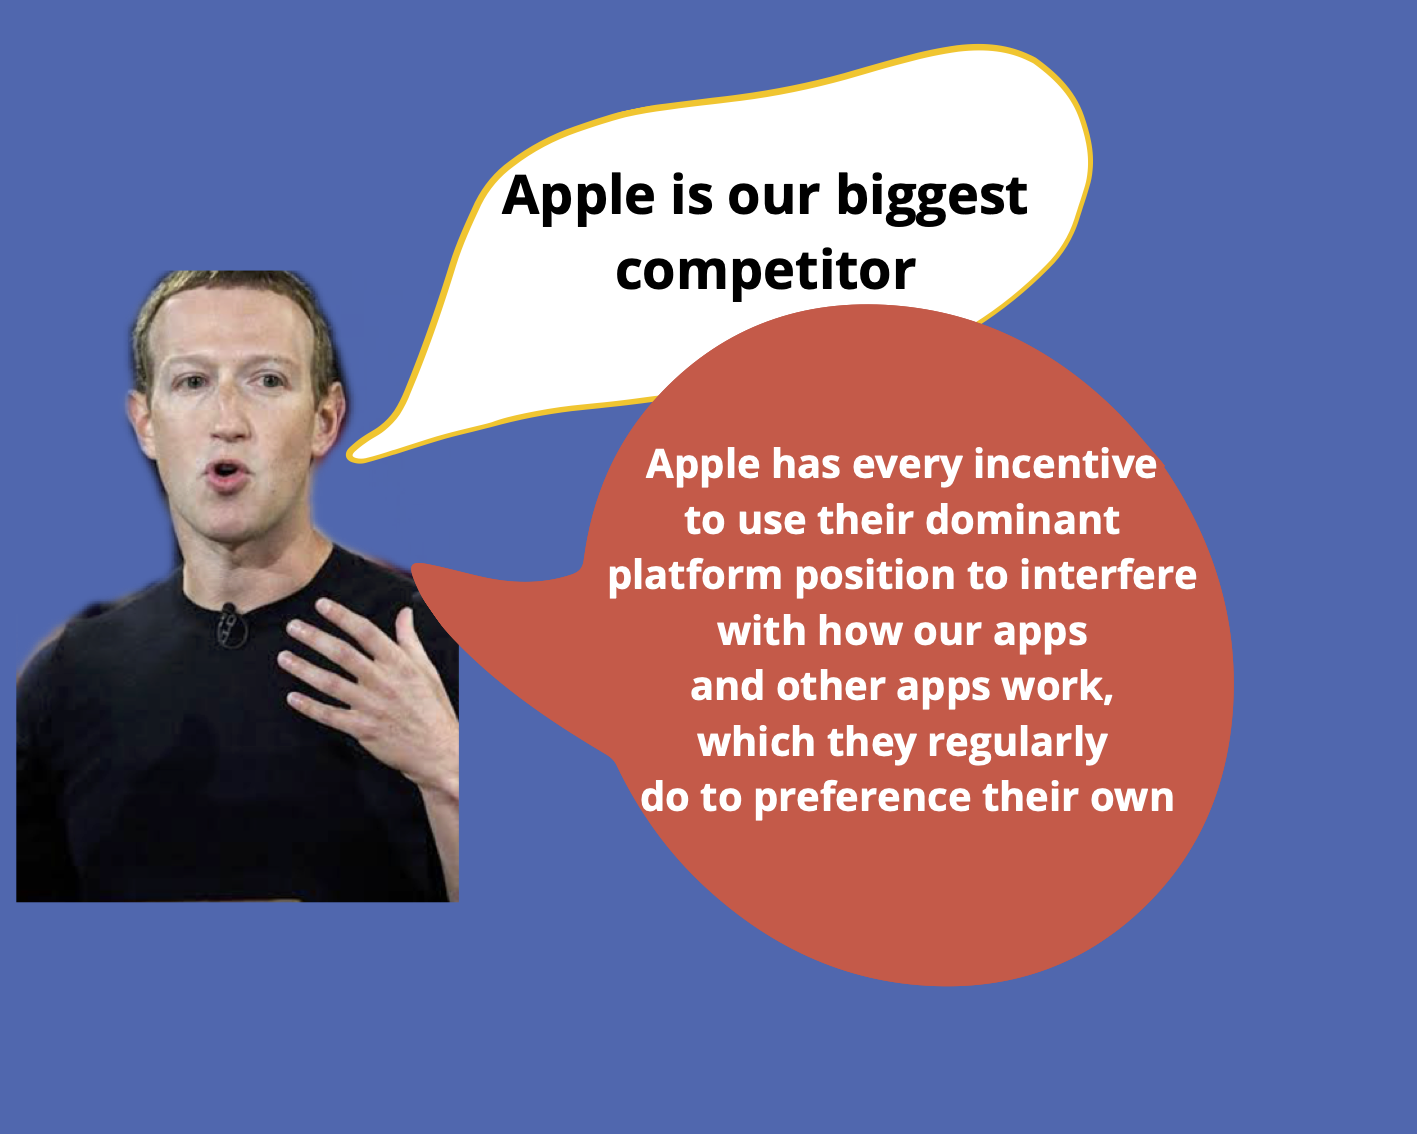 Mark Zuckerberg calls Apple their biggest competitor and anti-competitive.